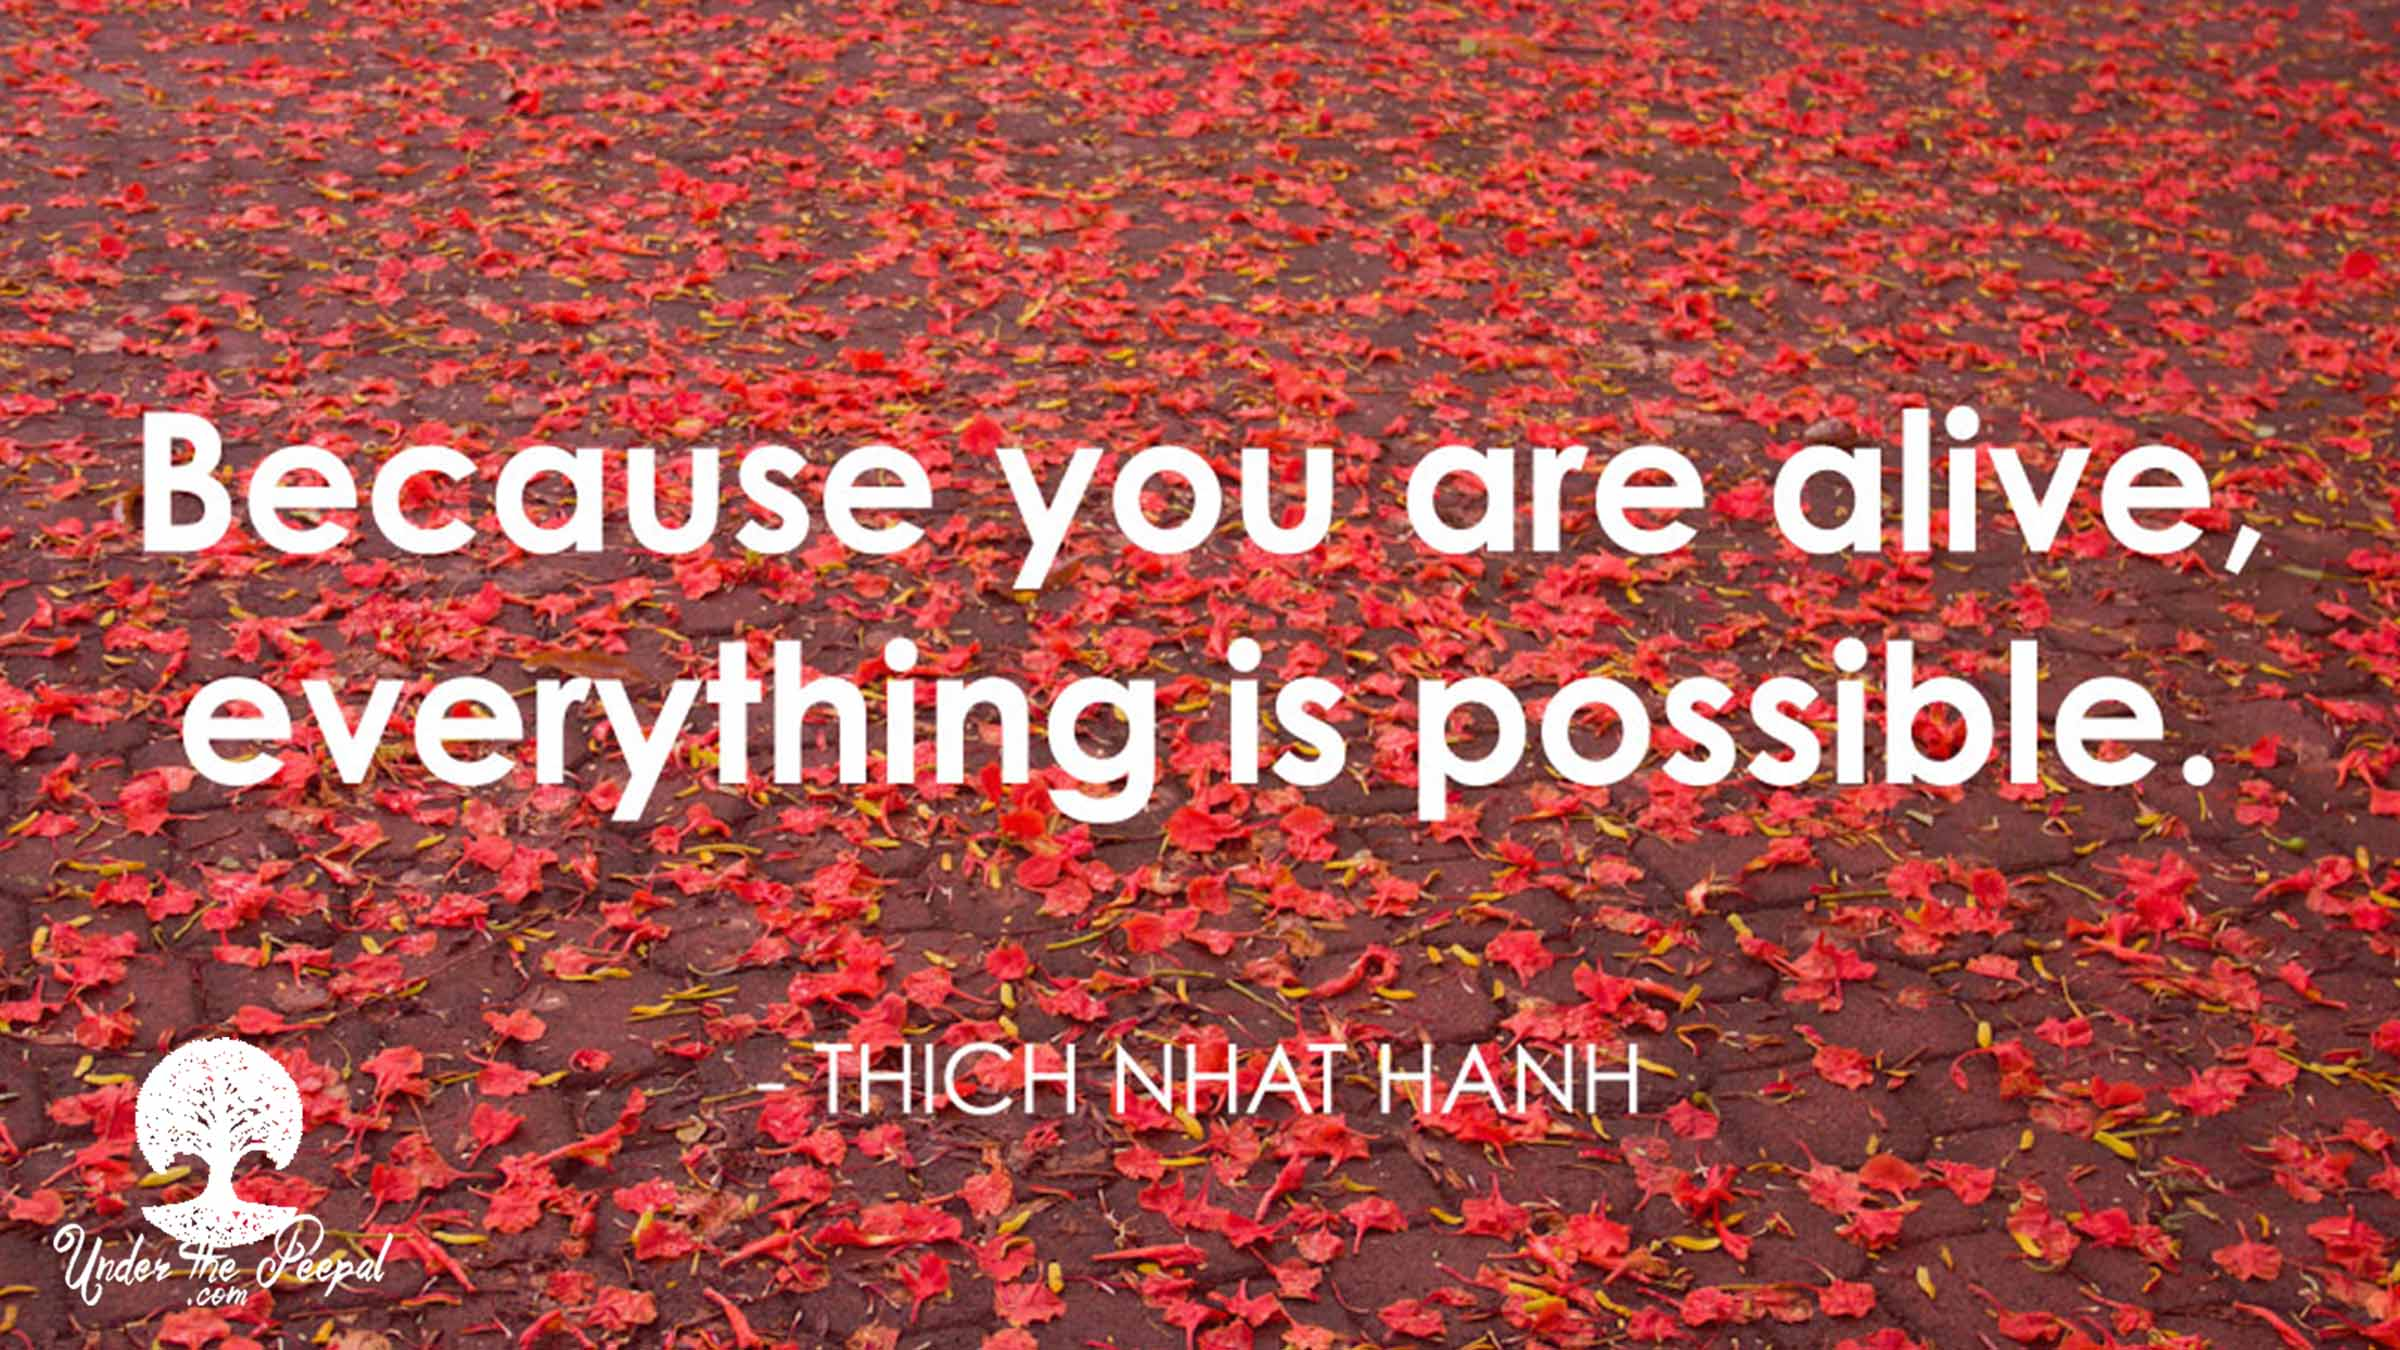 Quote-inspiration-because-you-are-alive-everything-is-possible-thich-nhat-hanh